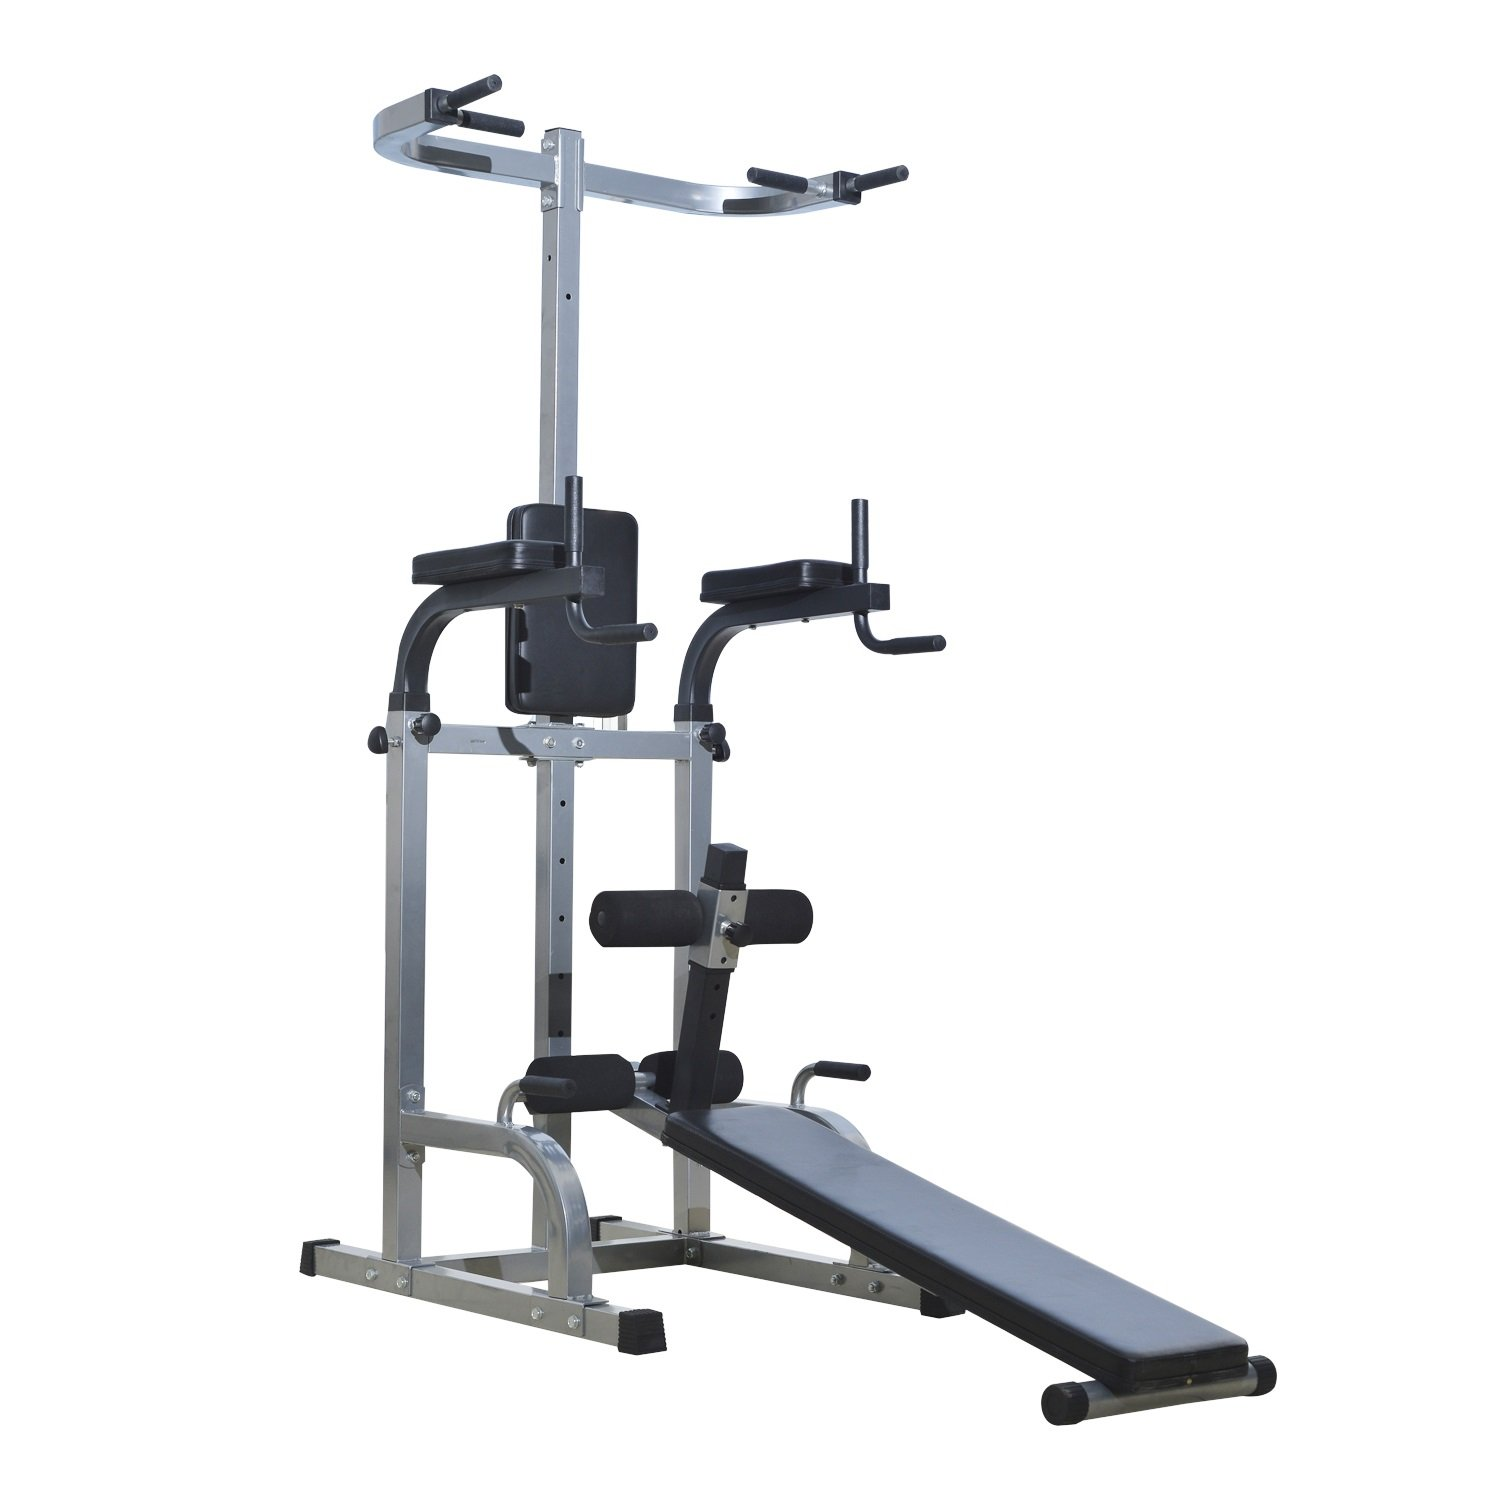 Soozier 80'' Full Body Power Tower Home Gym Fitness Station w/ Adjustable Sit Up Bench